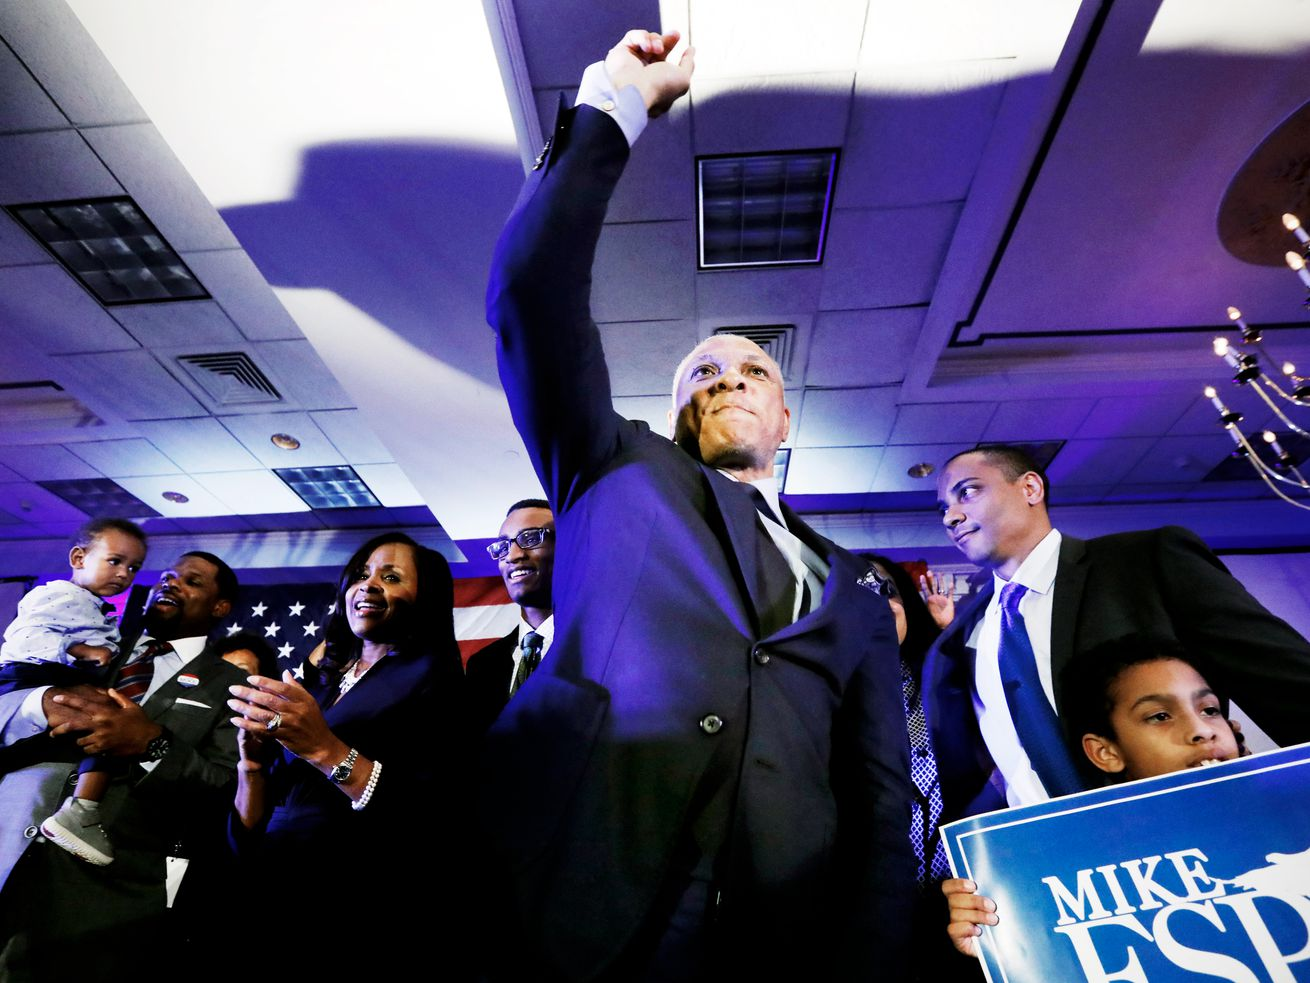 Democratic candidate Mike Espy stands with family members and supporters on election night in Jackson, Mississippi on November 6, 2018.